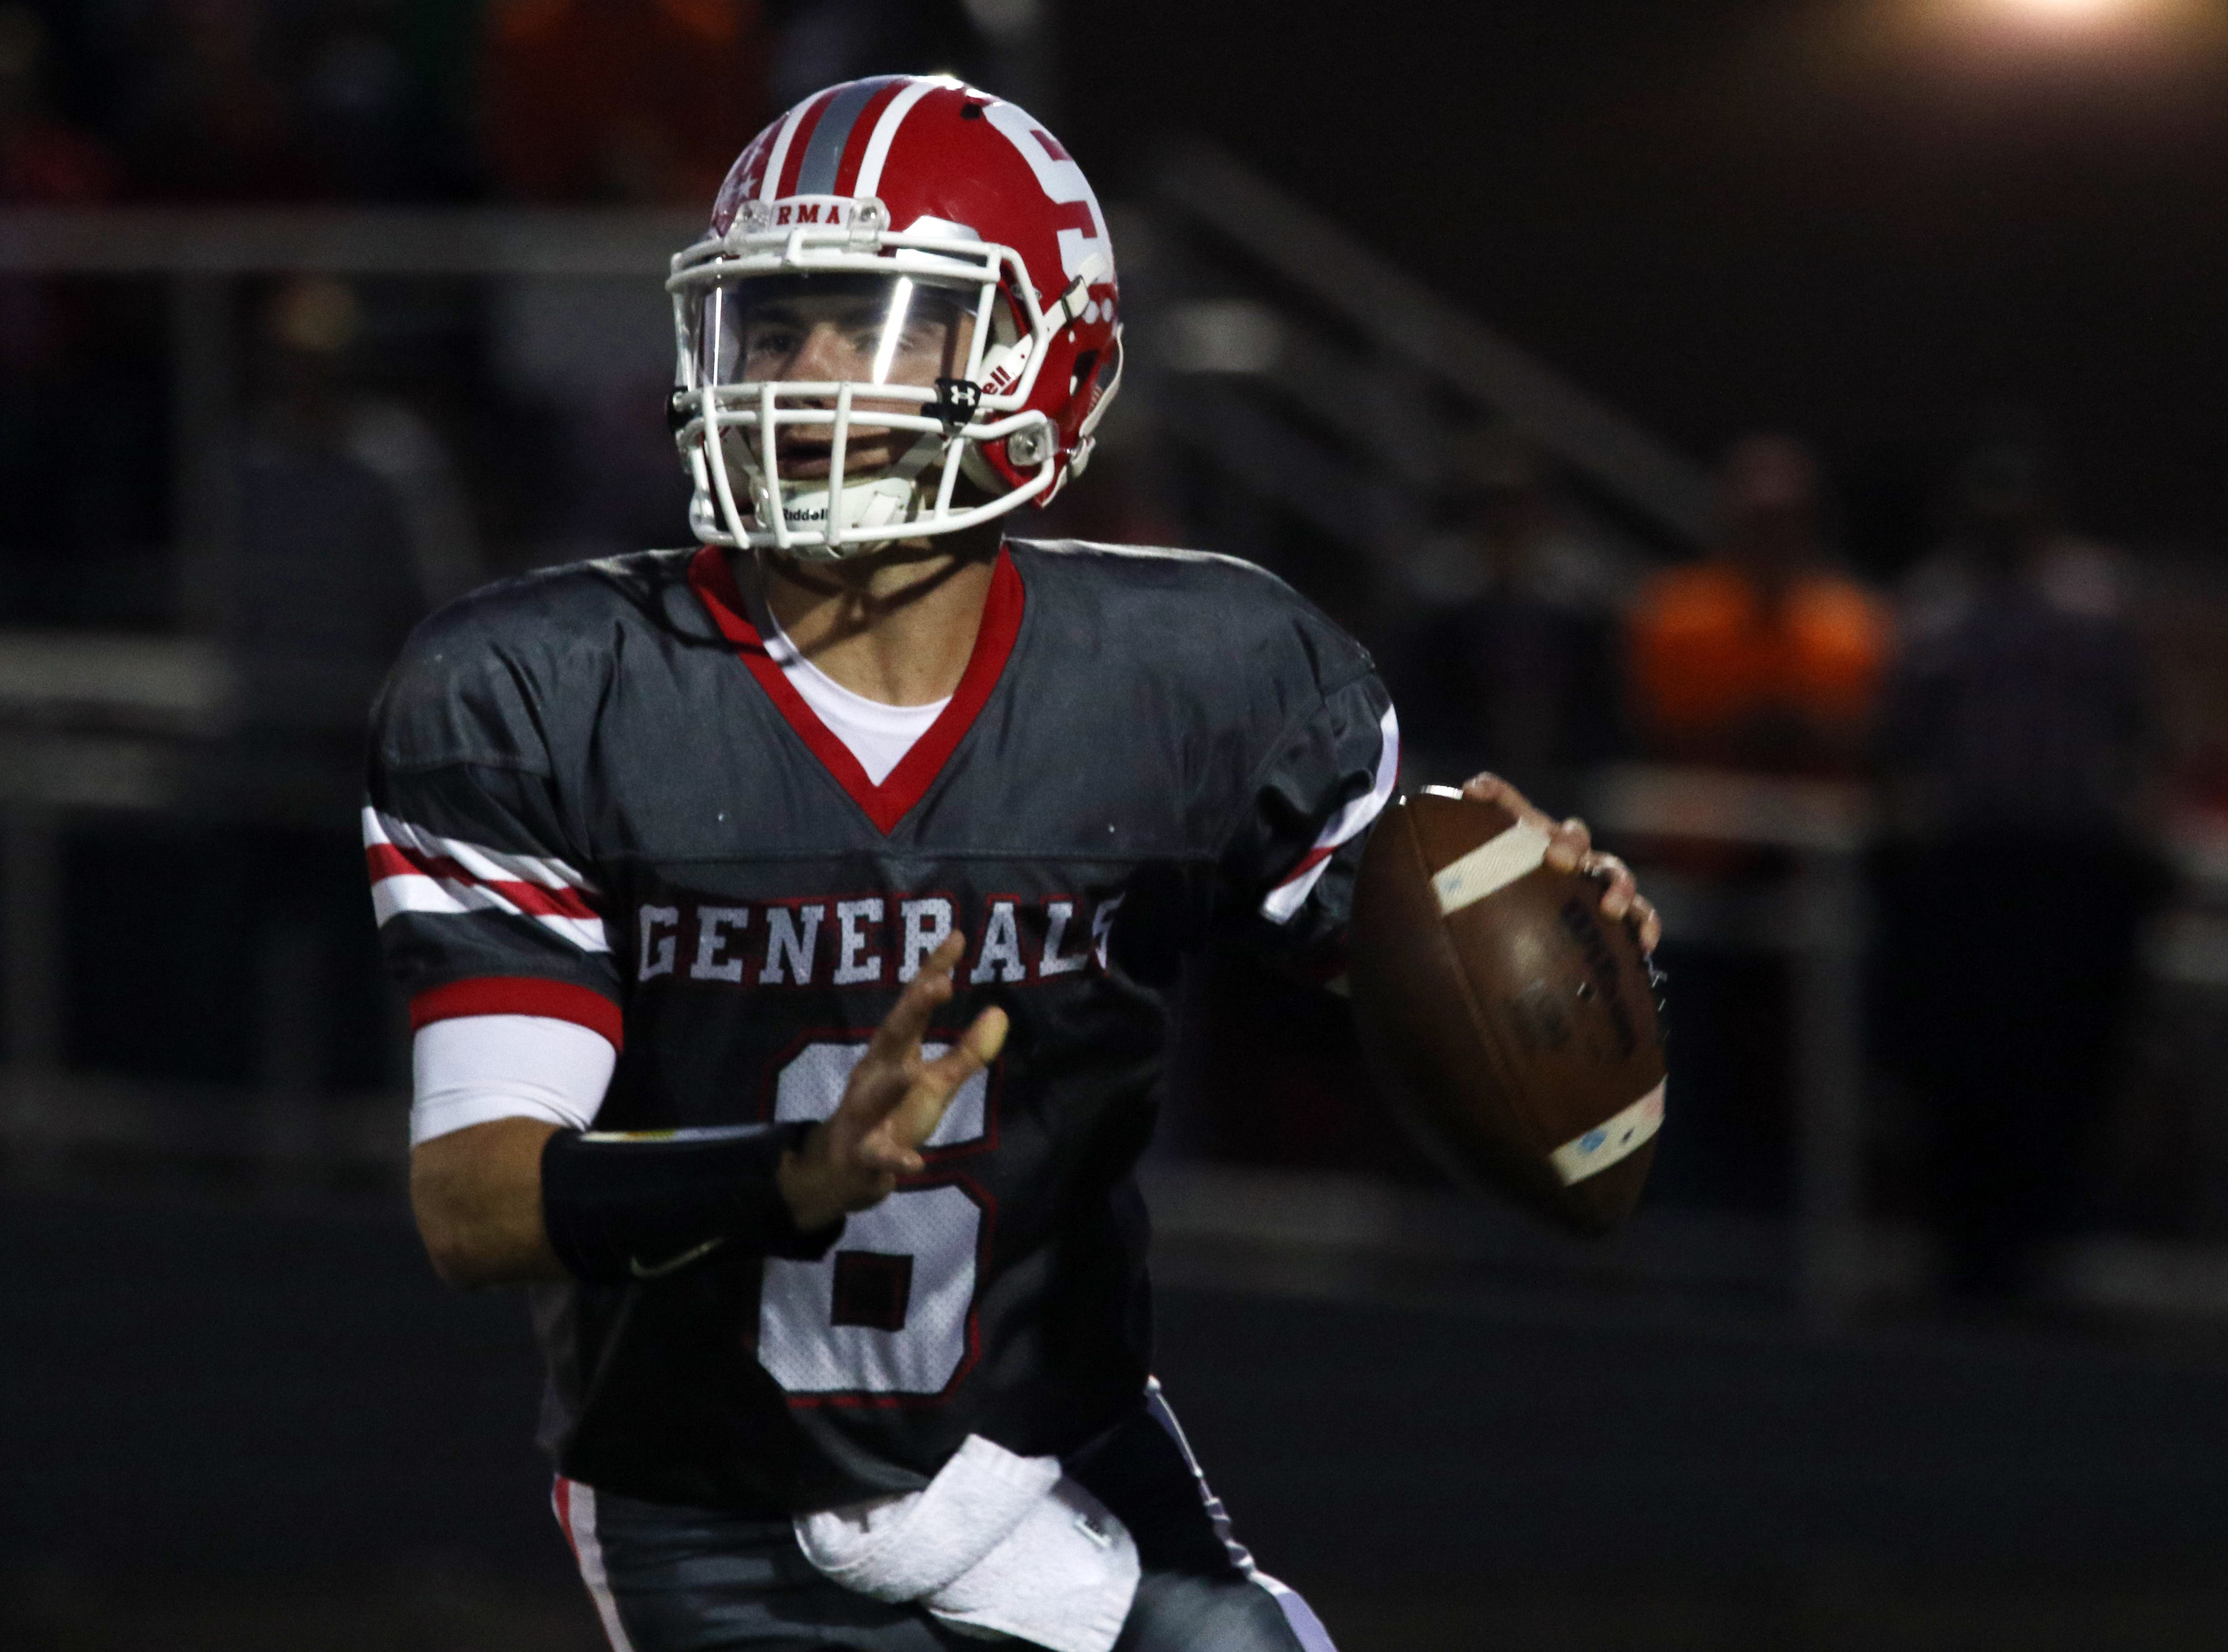 Sheridan's Ethan Heller gets ready to pass against Philo.